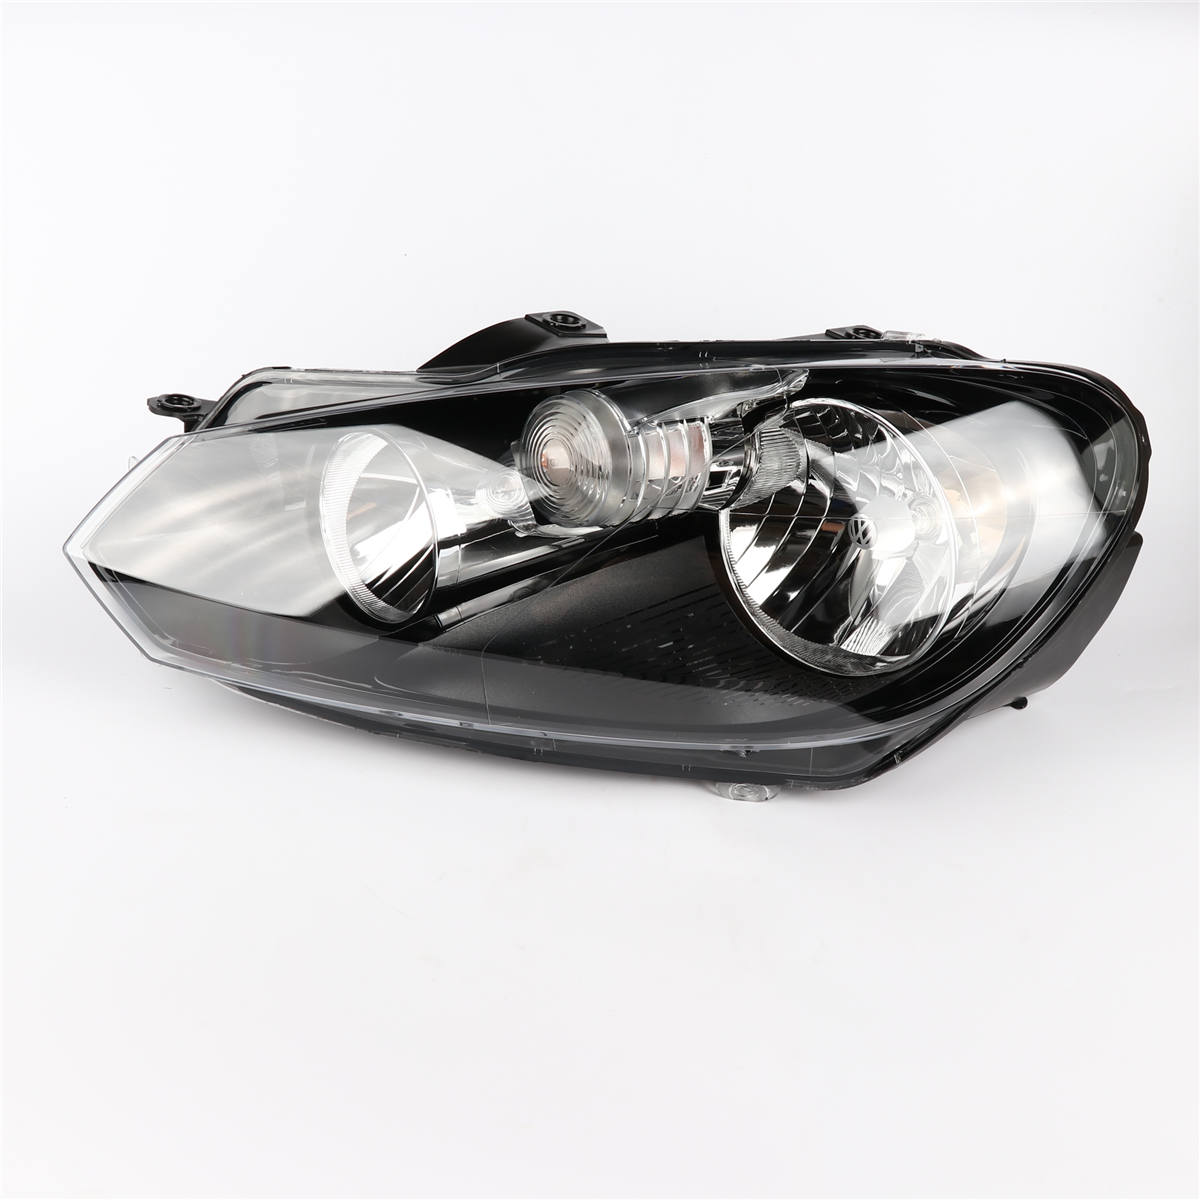 1Pcs OEM Left Halogen Headlamp Head Light Golf A6 For VW Golf MK6 L5KD 941 005 2pcs oem left